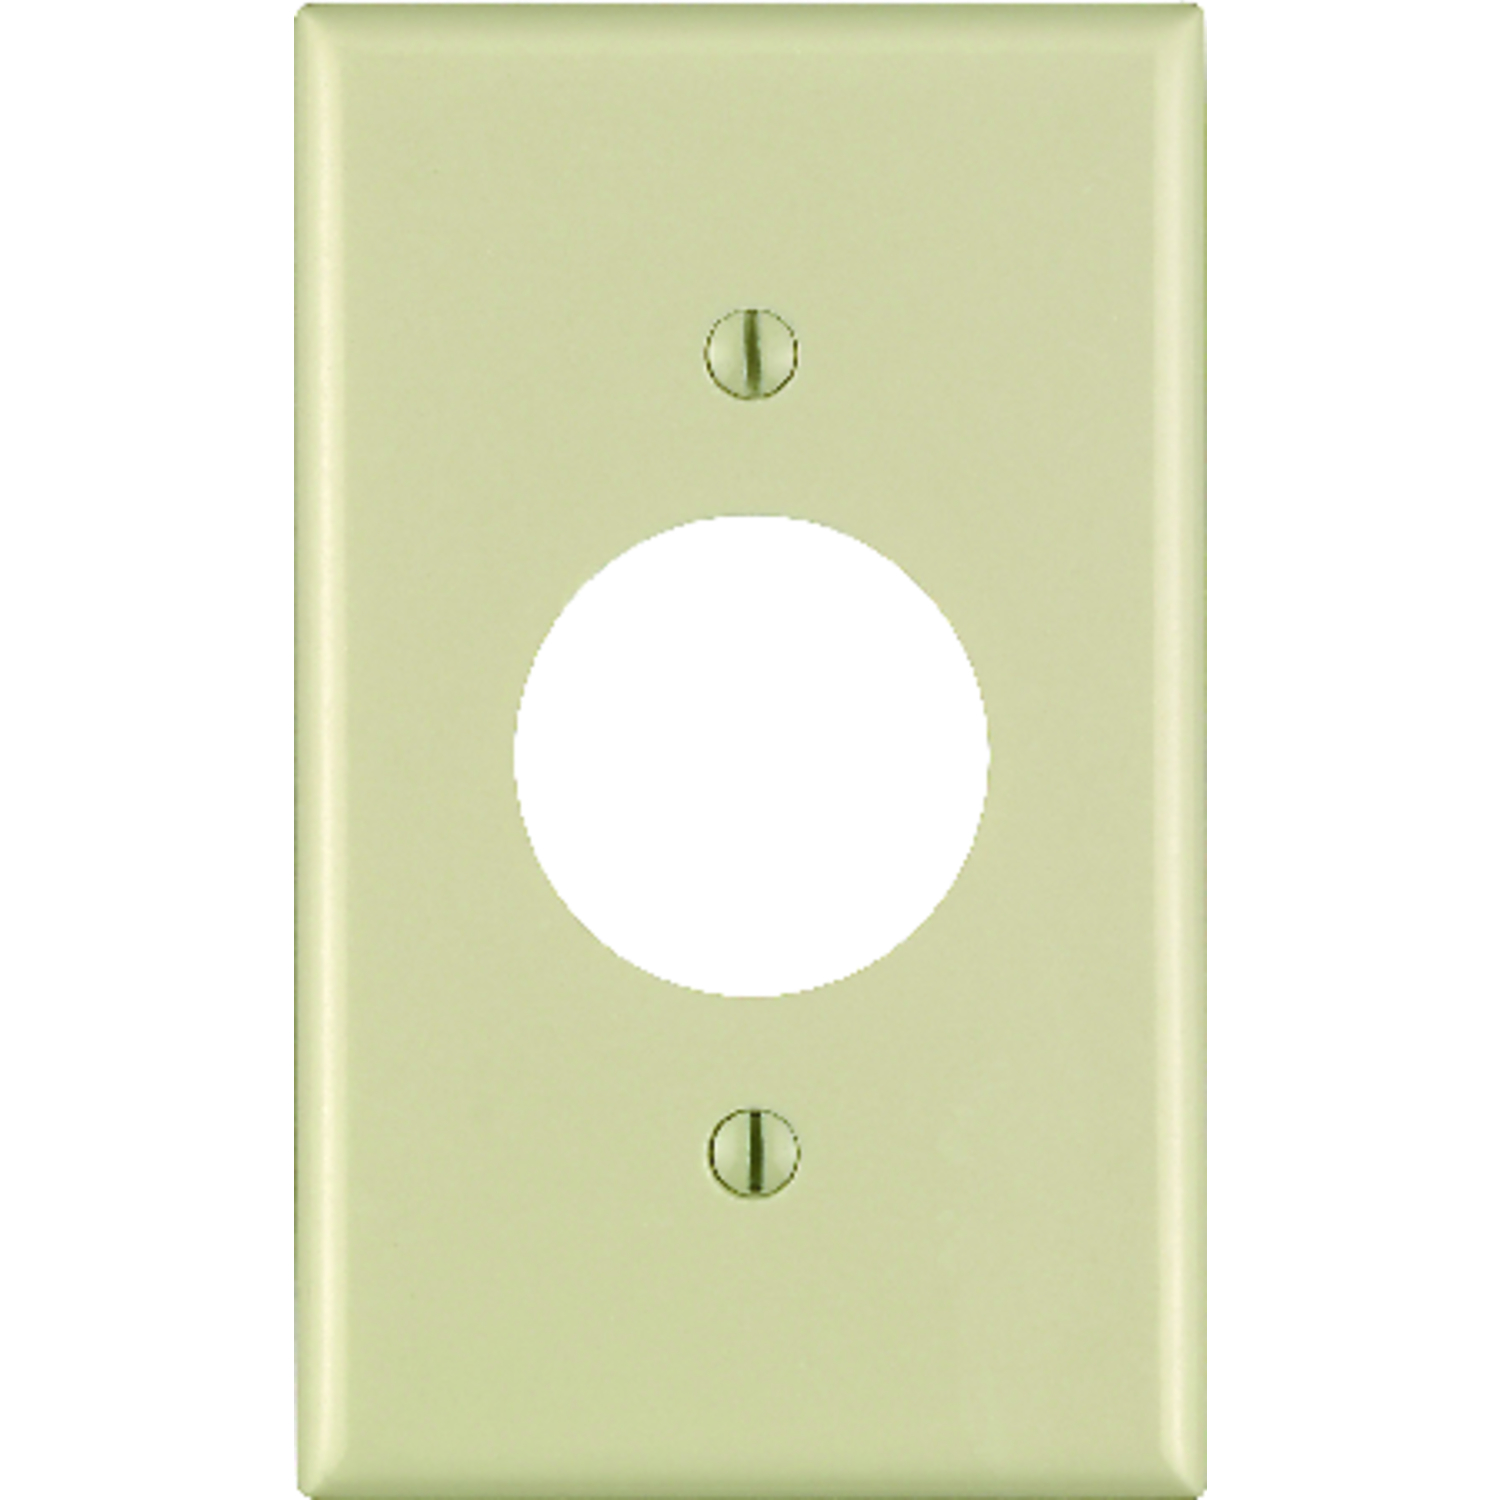 Leviton Ivory 1 gang Plastic Wall Plate 1 pk Outlet - Ace Hardware